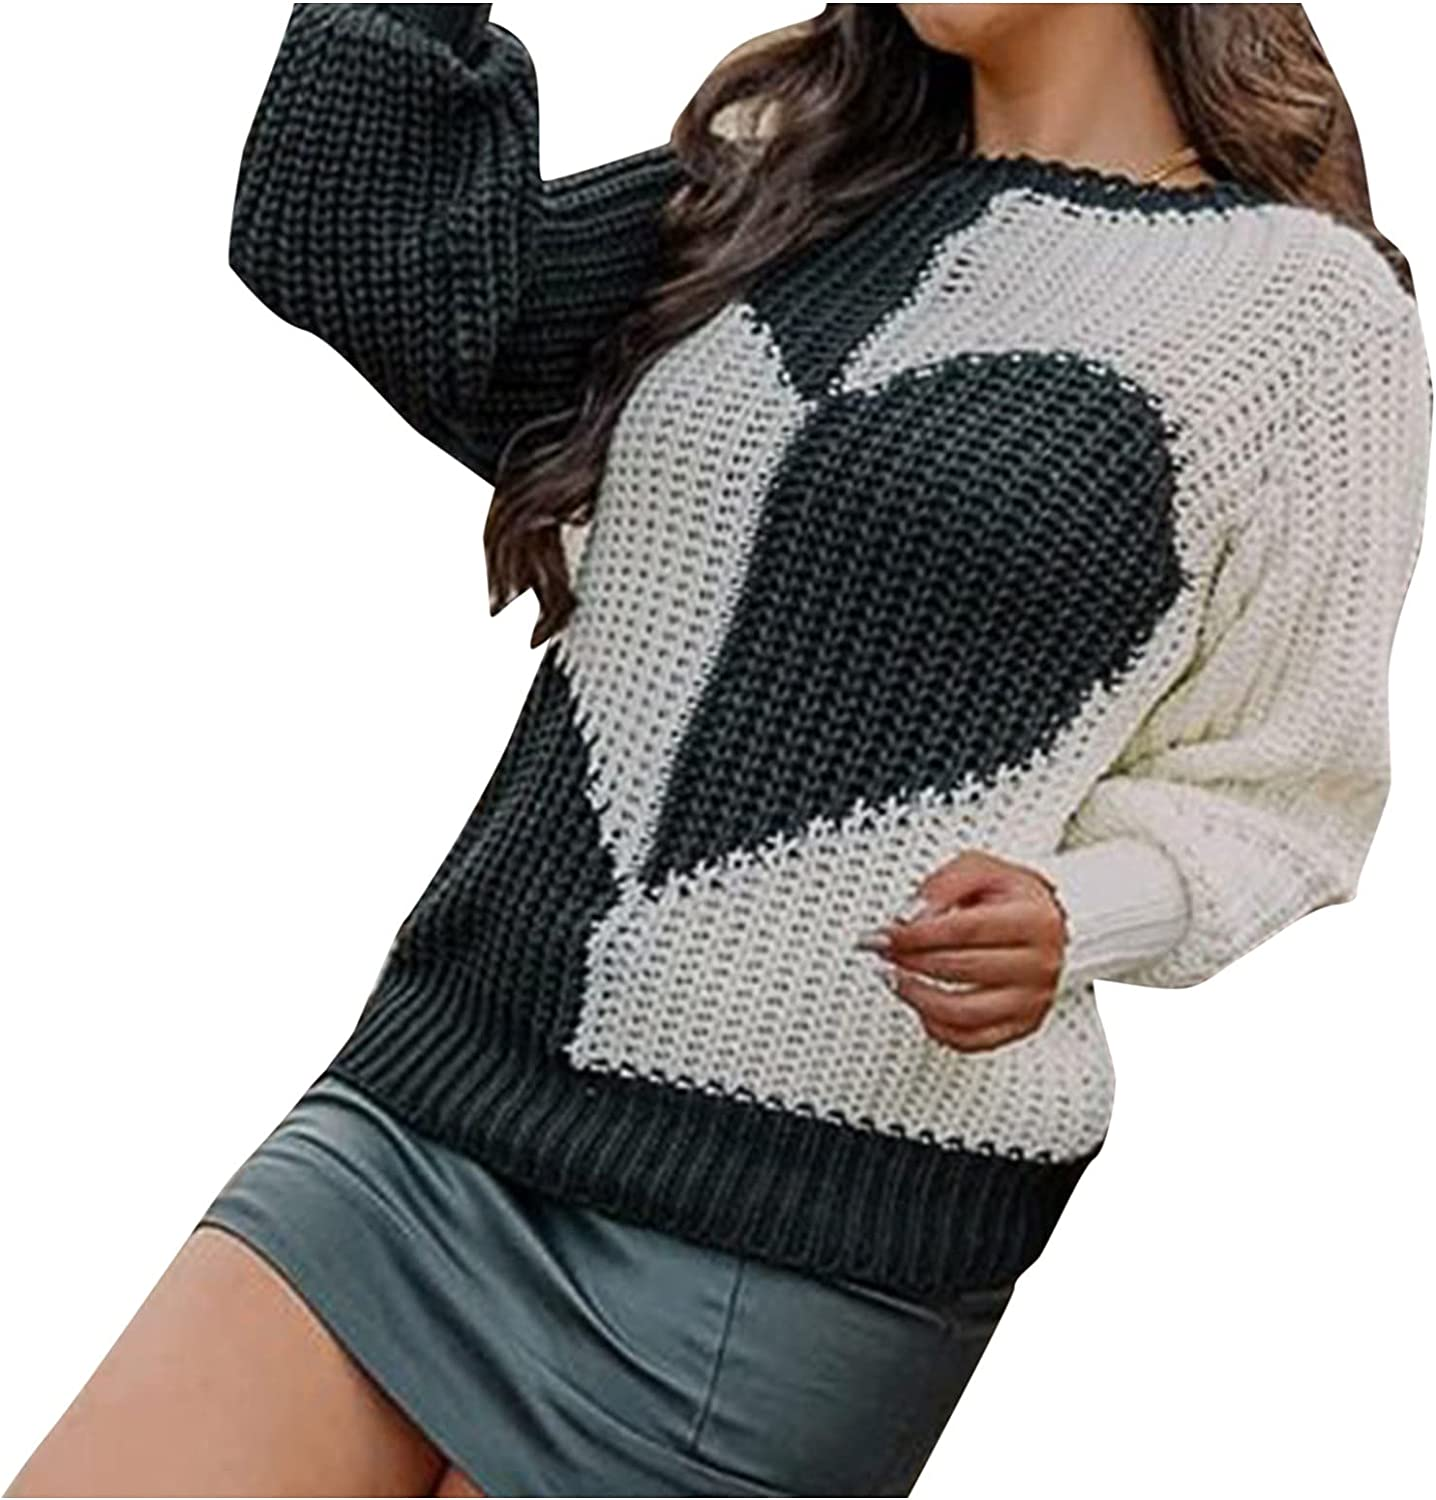 Changeshopping Sweater for Women,Autumn Winter Love Shape Print Long Sleeve O-Neck Sweater Blouse